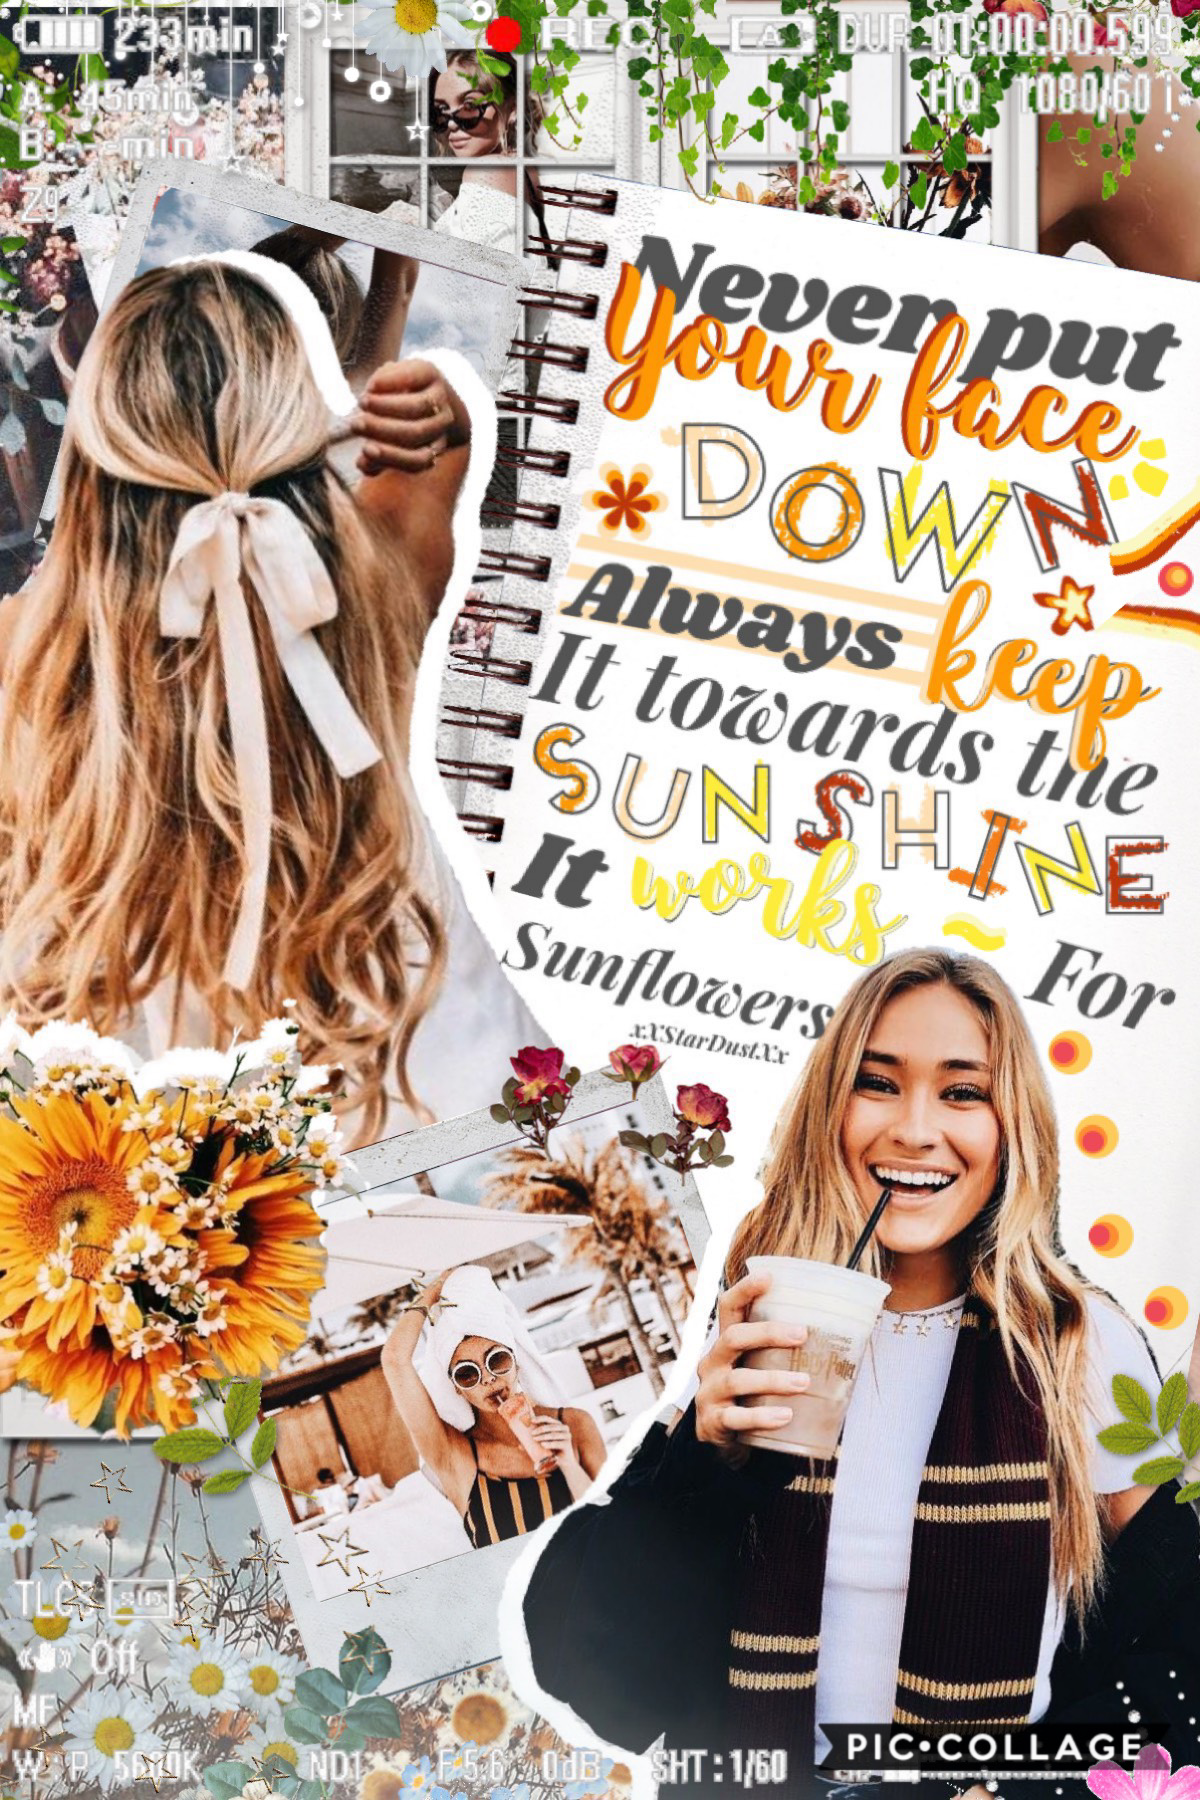 🌻 tap🌻  Ahhh thank you so much for the feature✨♥️💕💗🎉🎊 I love you all and thank you for the support 🙏  Have a great summer 🏖 🏝  QOTD-favorite flower 🌸 🌺 🌹  AOTD-Sunflower 🌻🌻🌻♥️💕✨💗